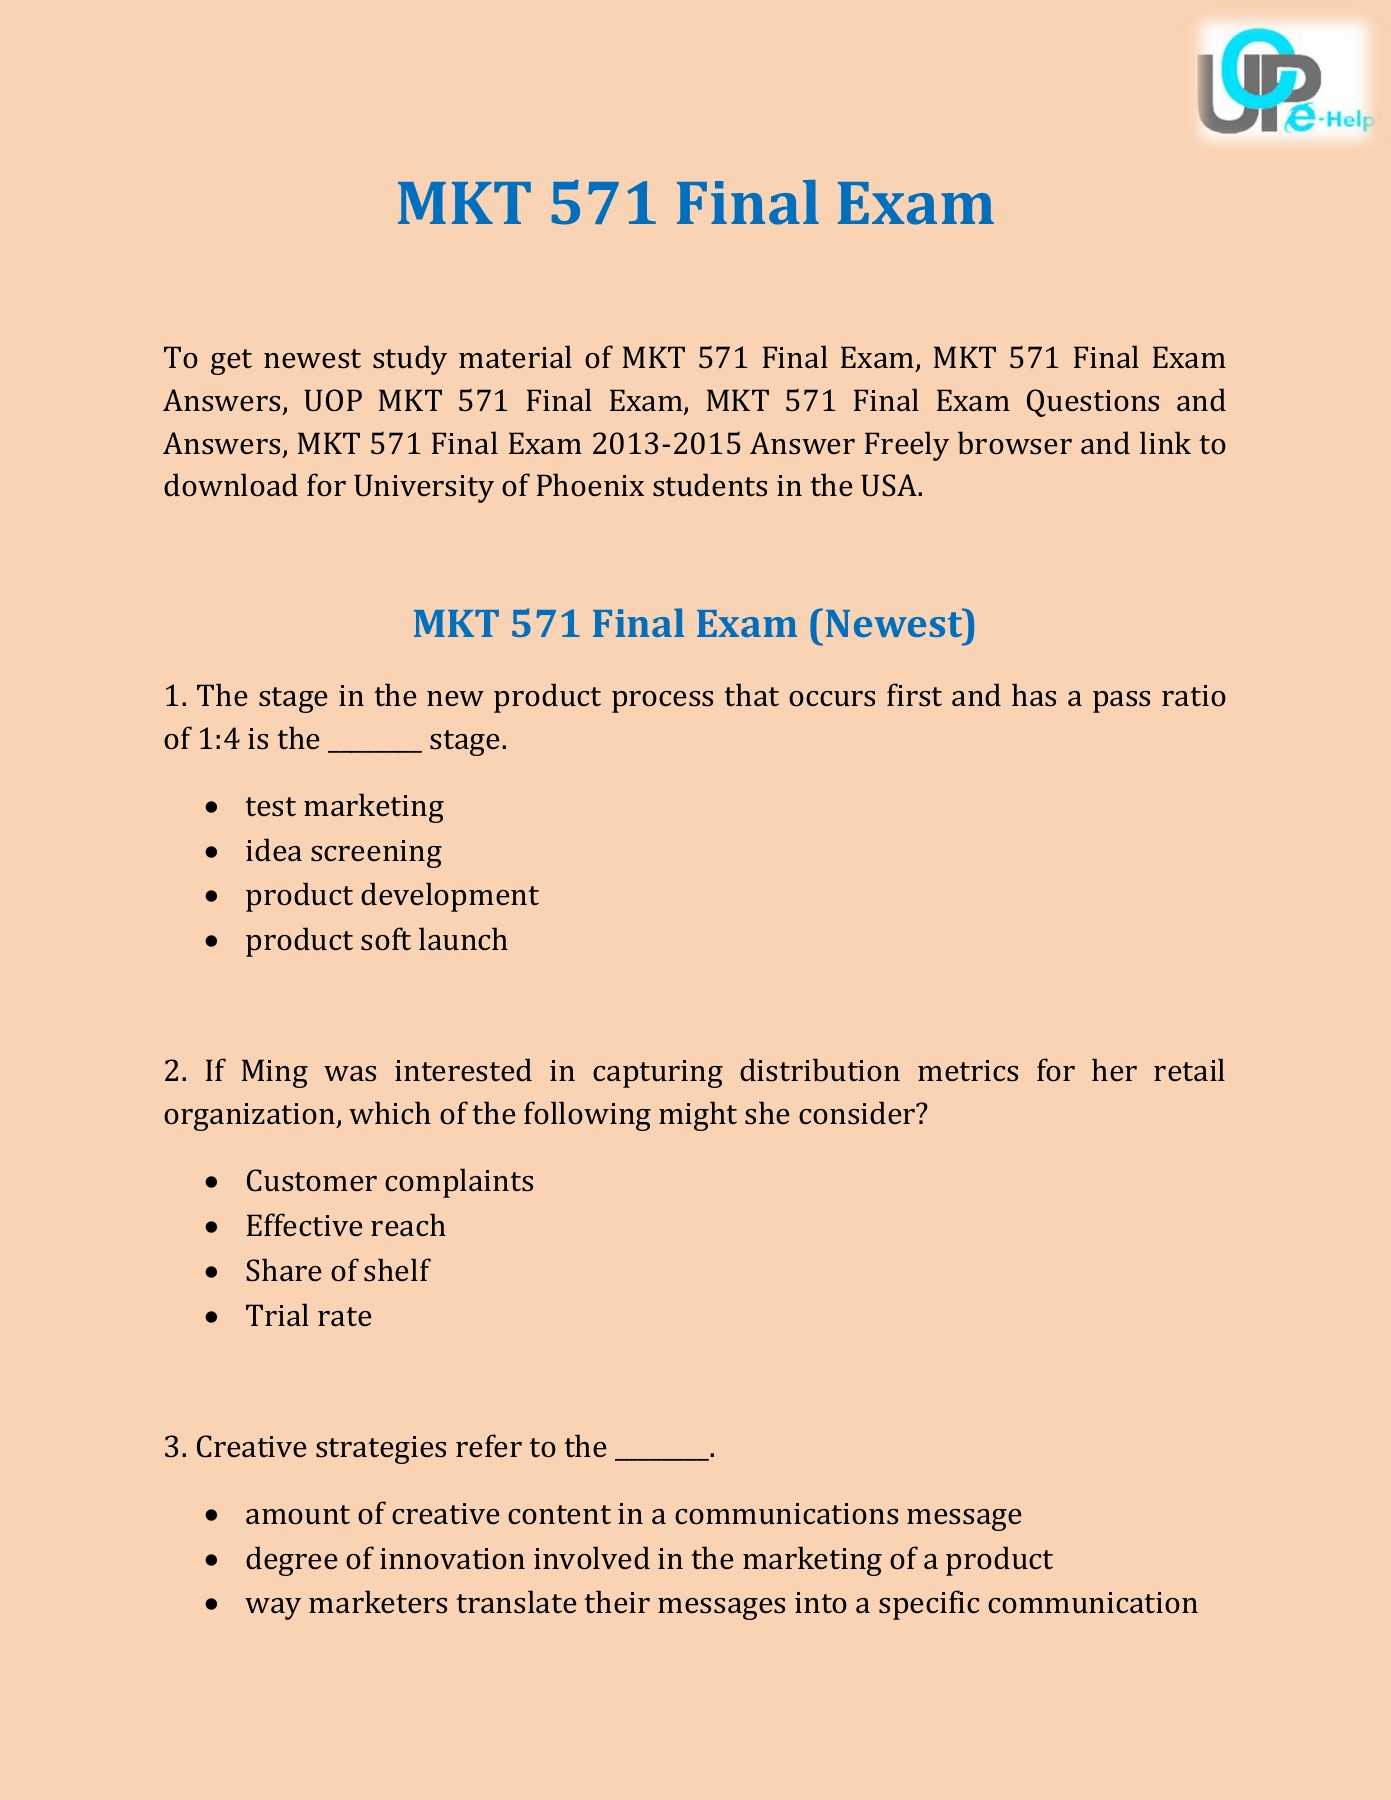 UOP E Help : MKT 571 Final Exam 2015 Questions and Answers